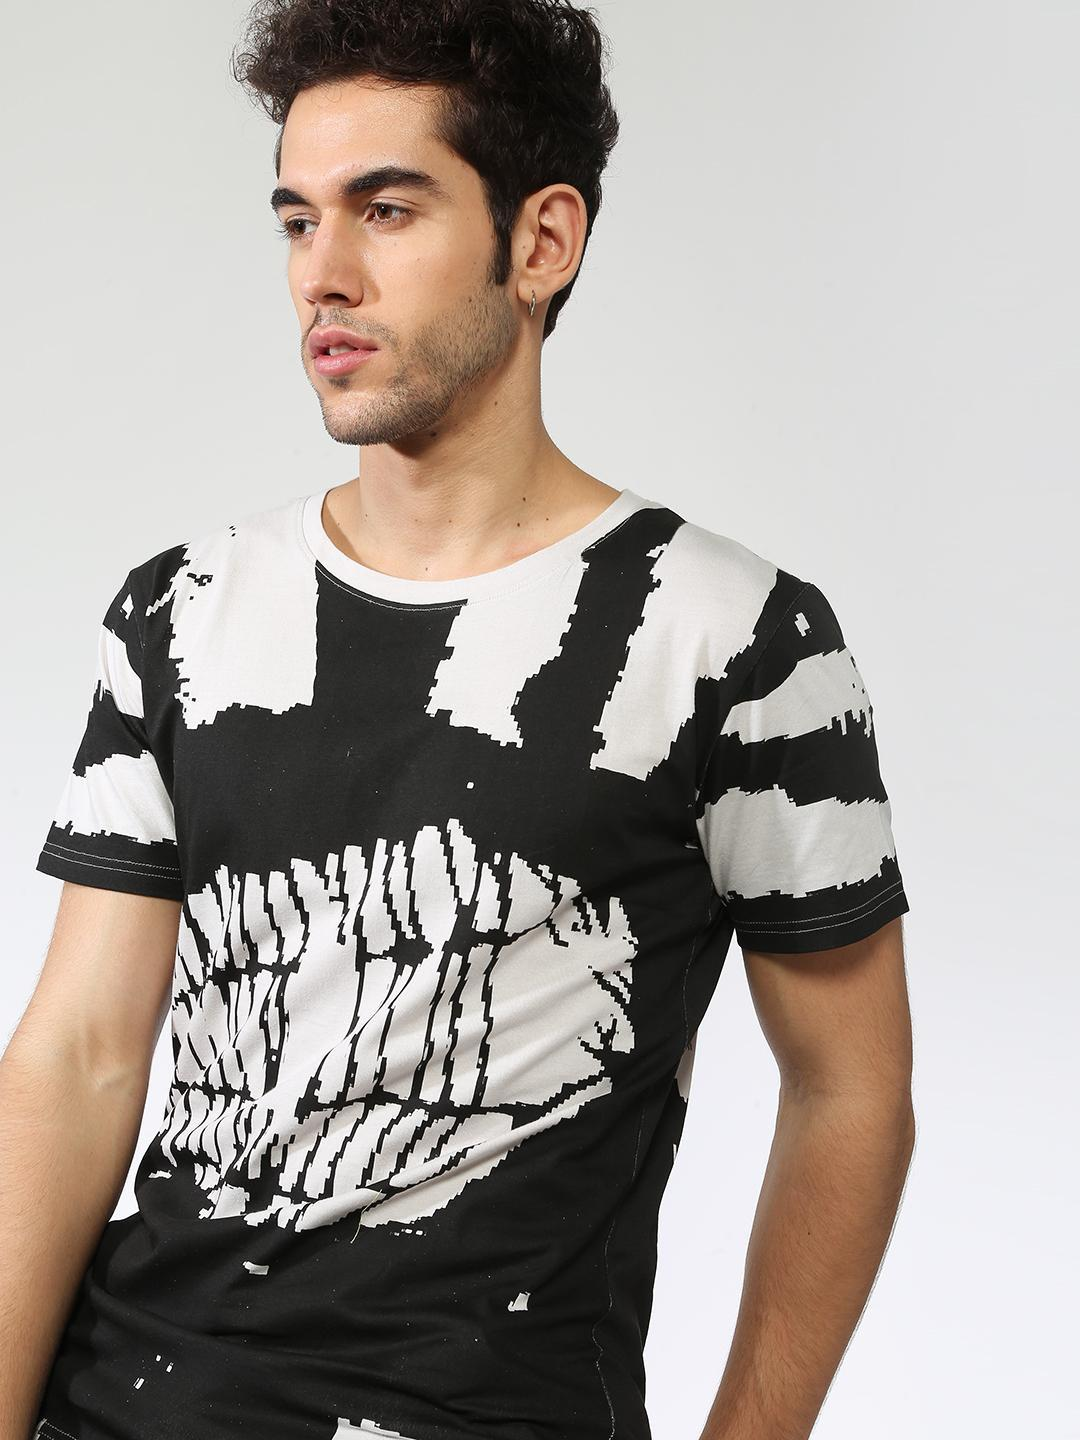 Blue Saint Black All Over Abstract Print Slim Fit T-shirt 1